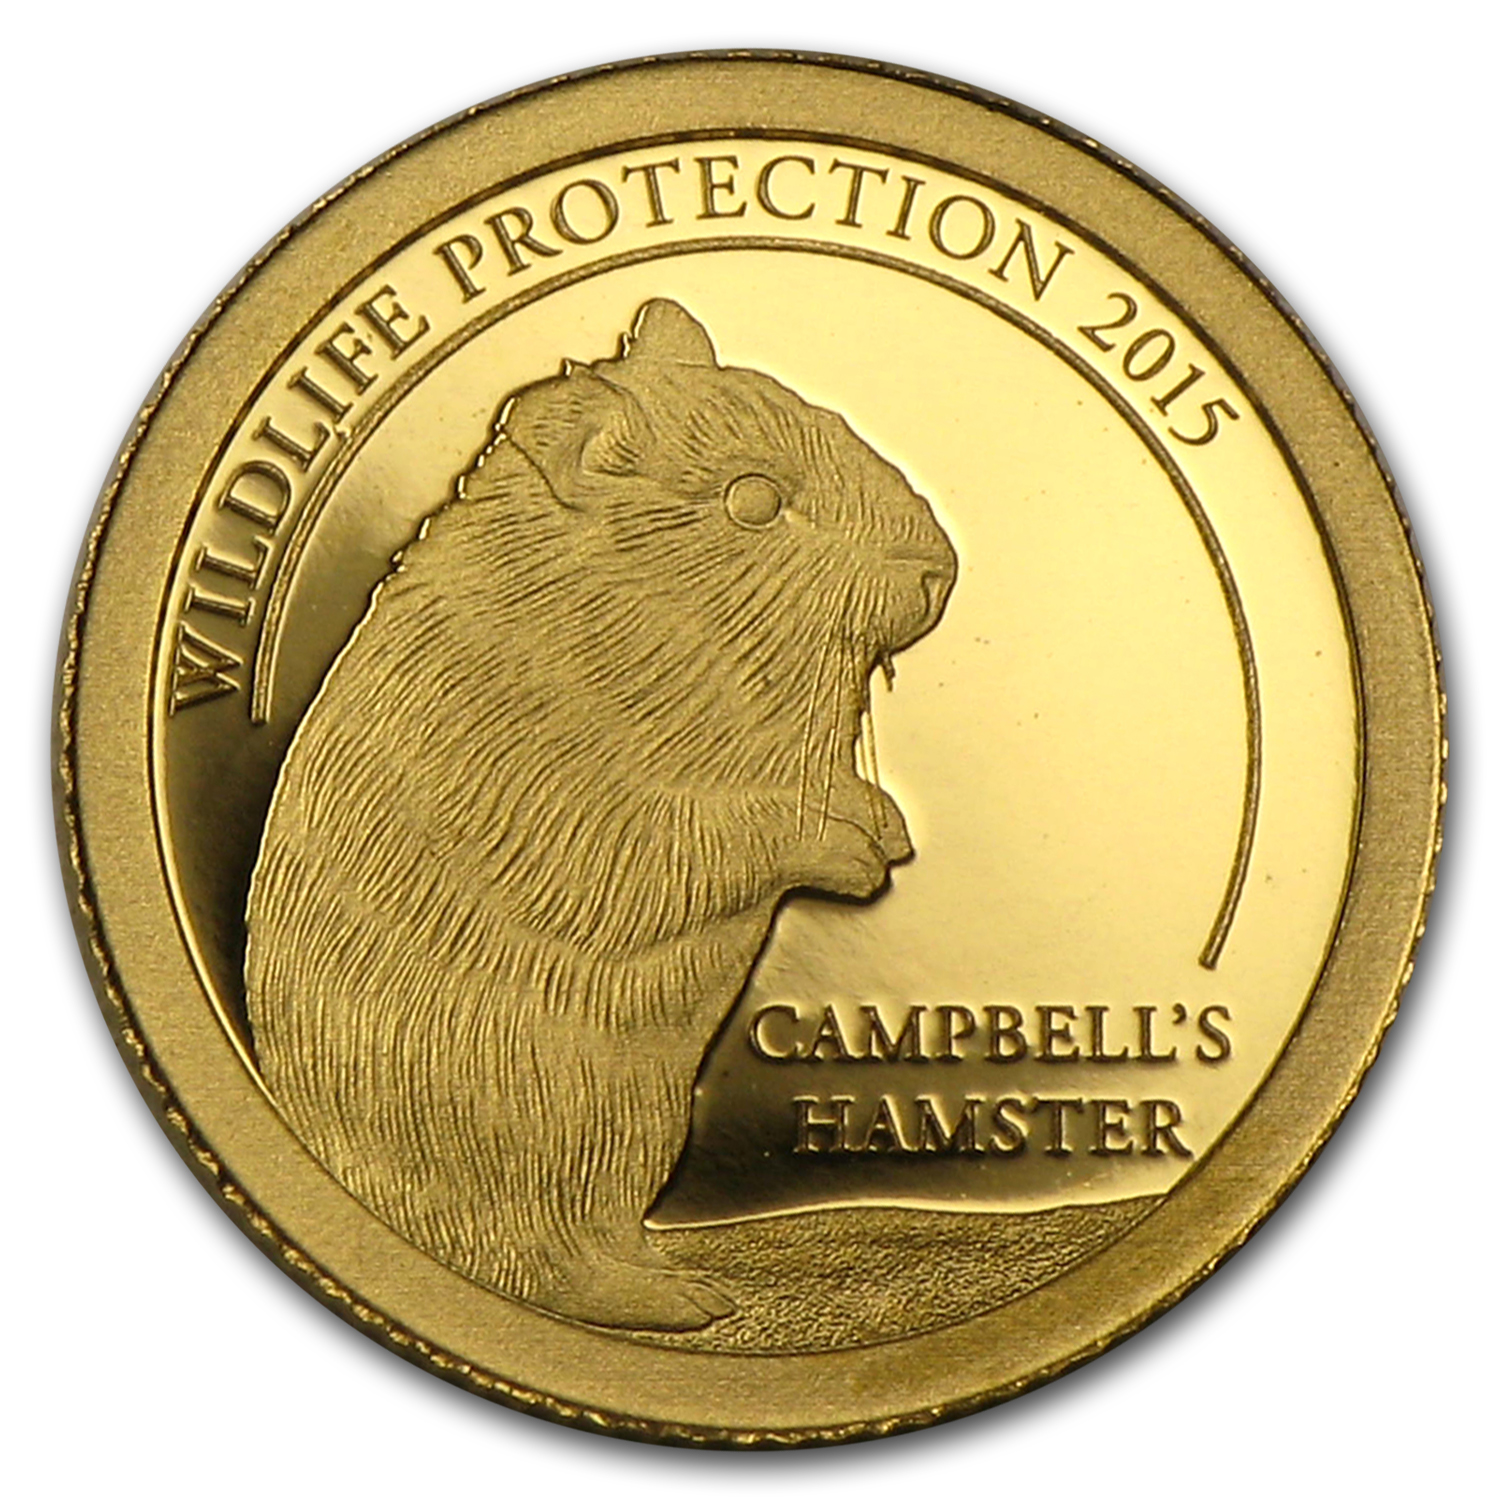 2015 Mongolia 1/2 gram Proof Gold 500 Togrog Wildlife Hamster